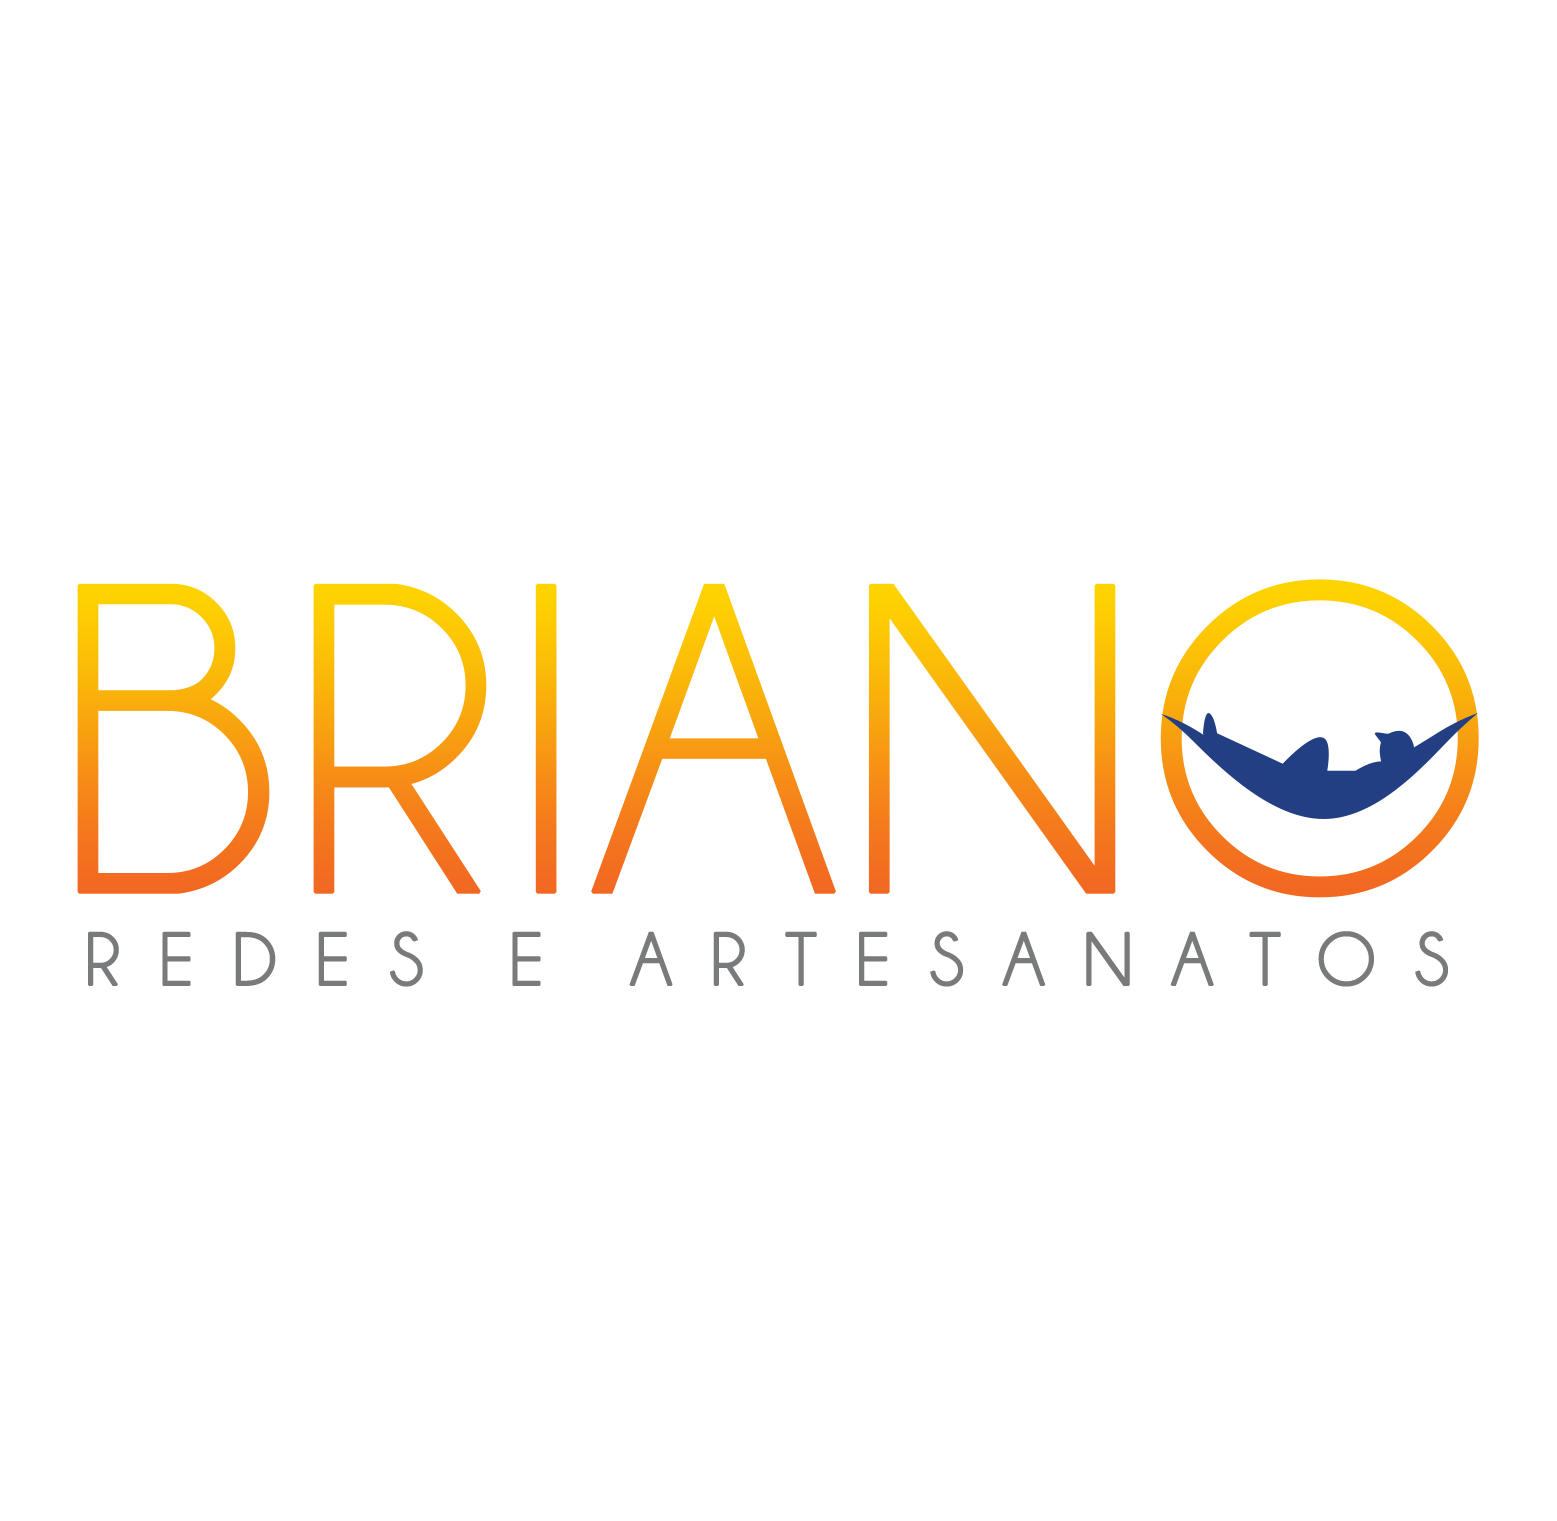 BRIANOREDES